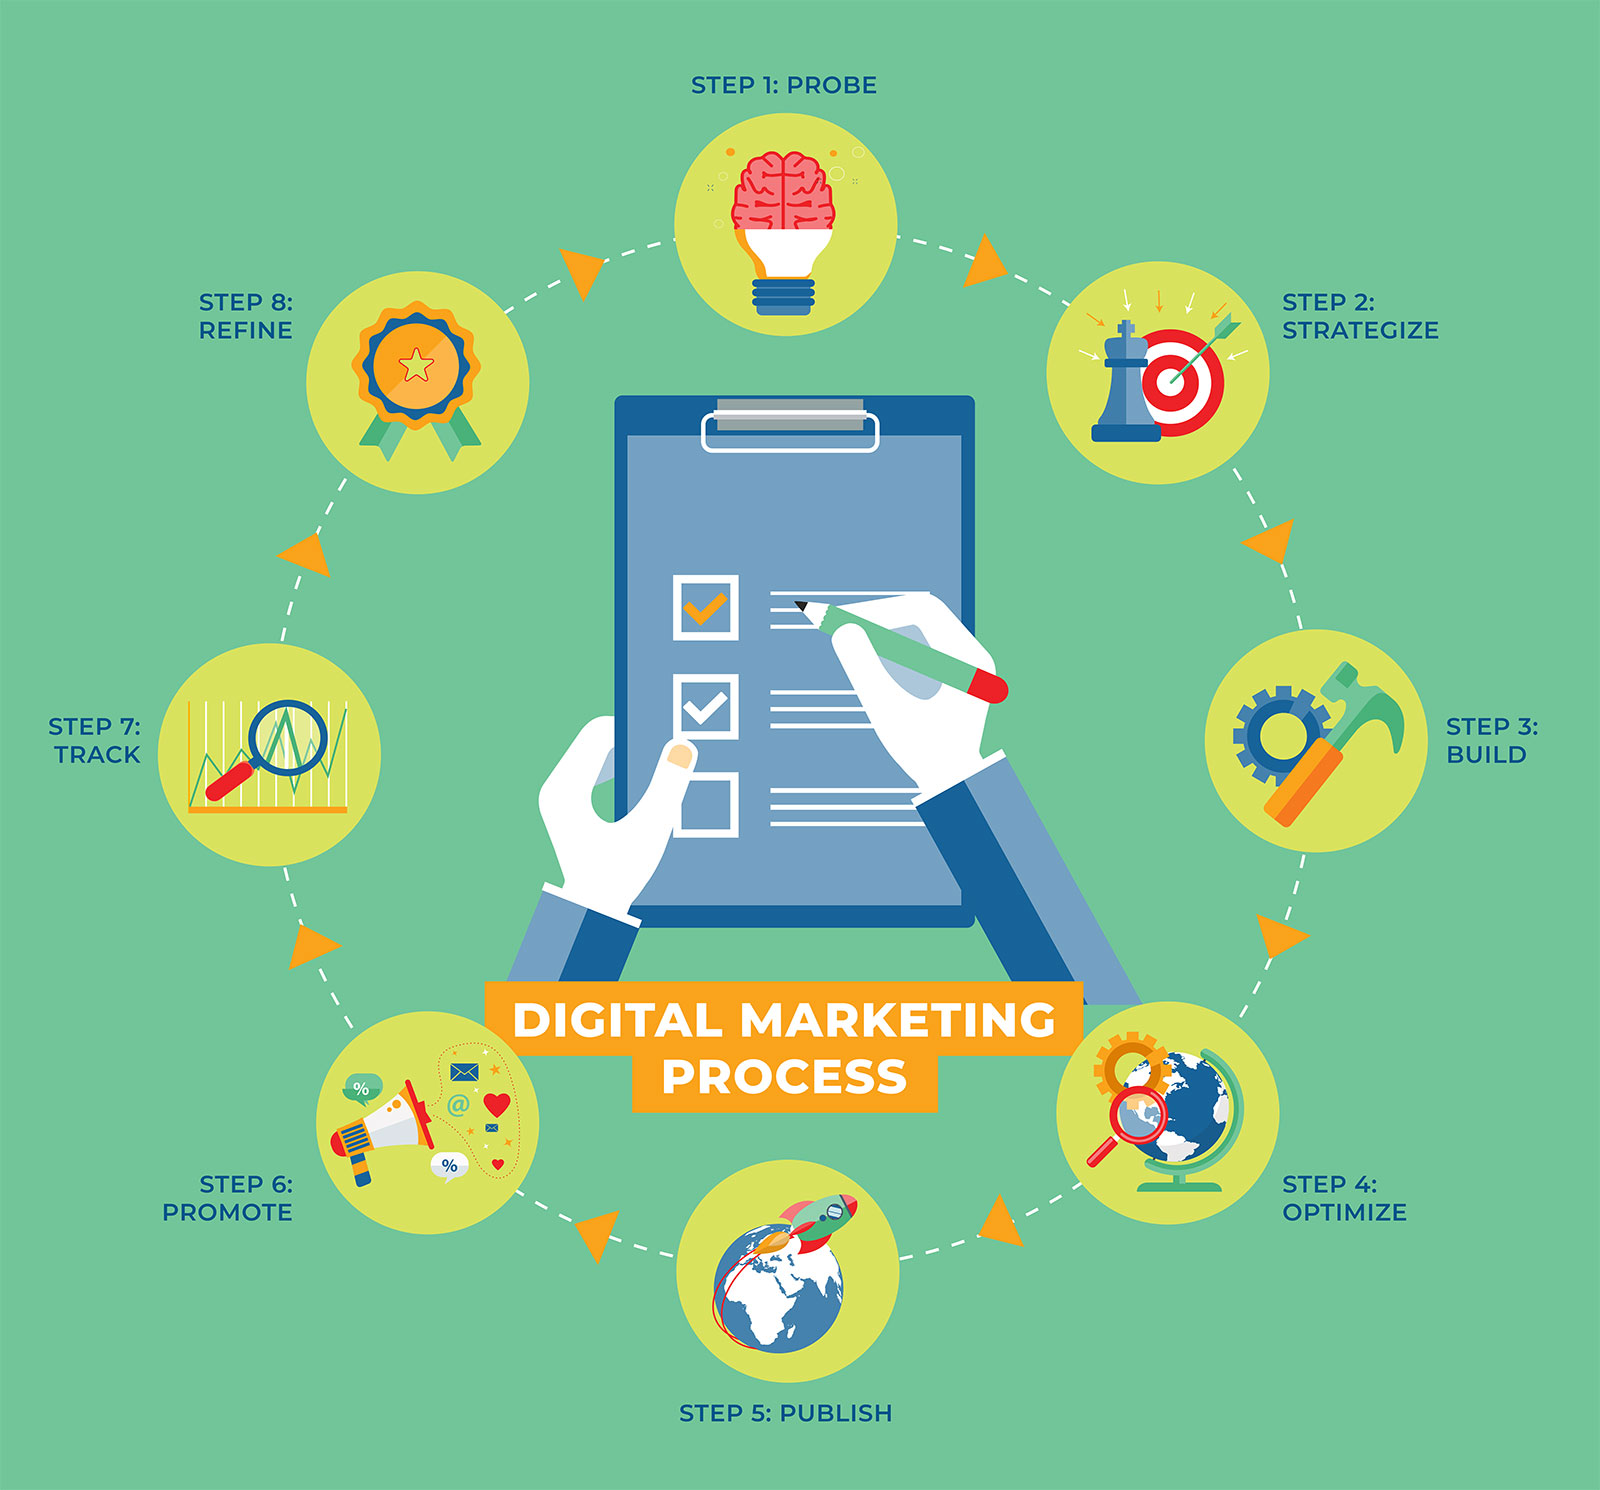 digital_marketing_process_infographic_2019_greenville_NC